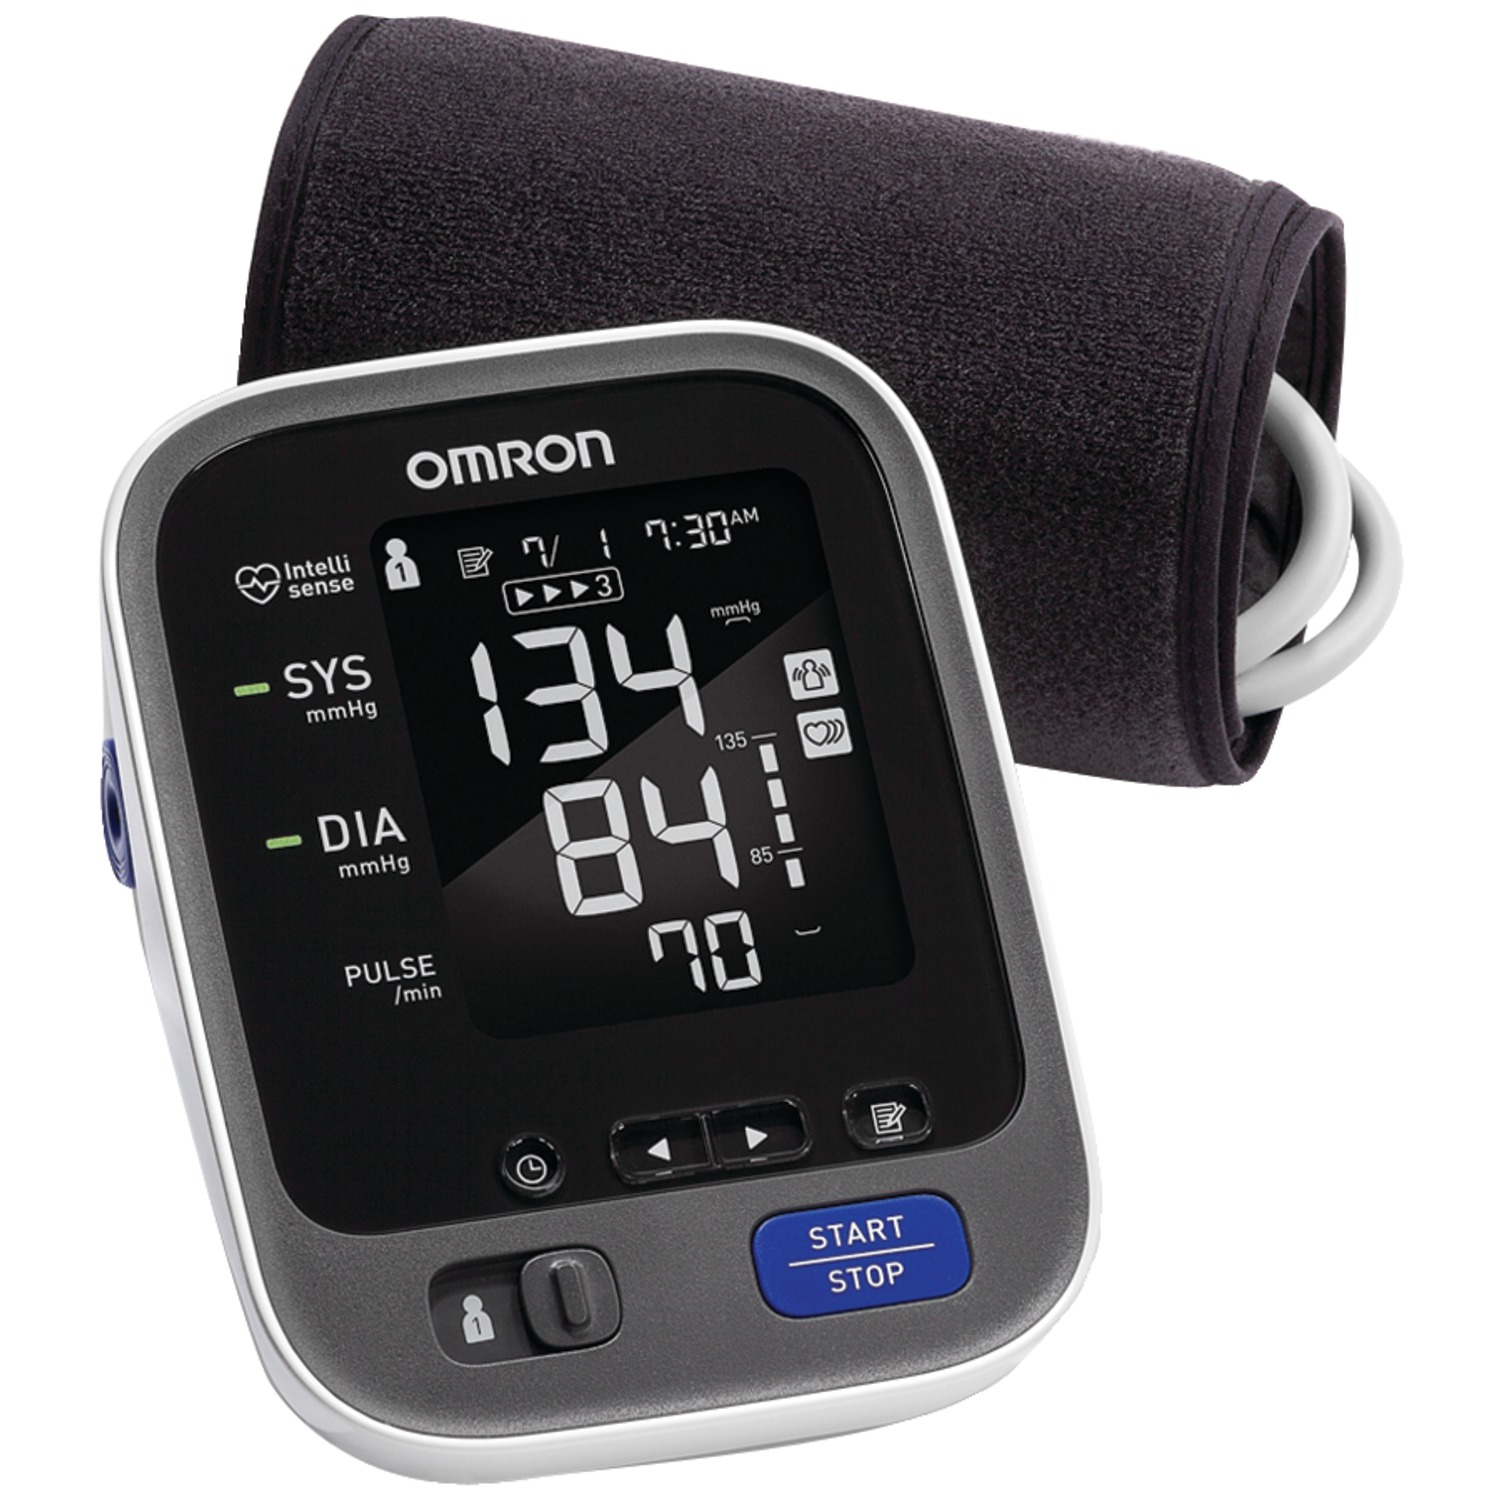 Omron 10 Series Upper Arm Blood Pressure Monitor with Cuff